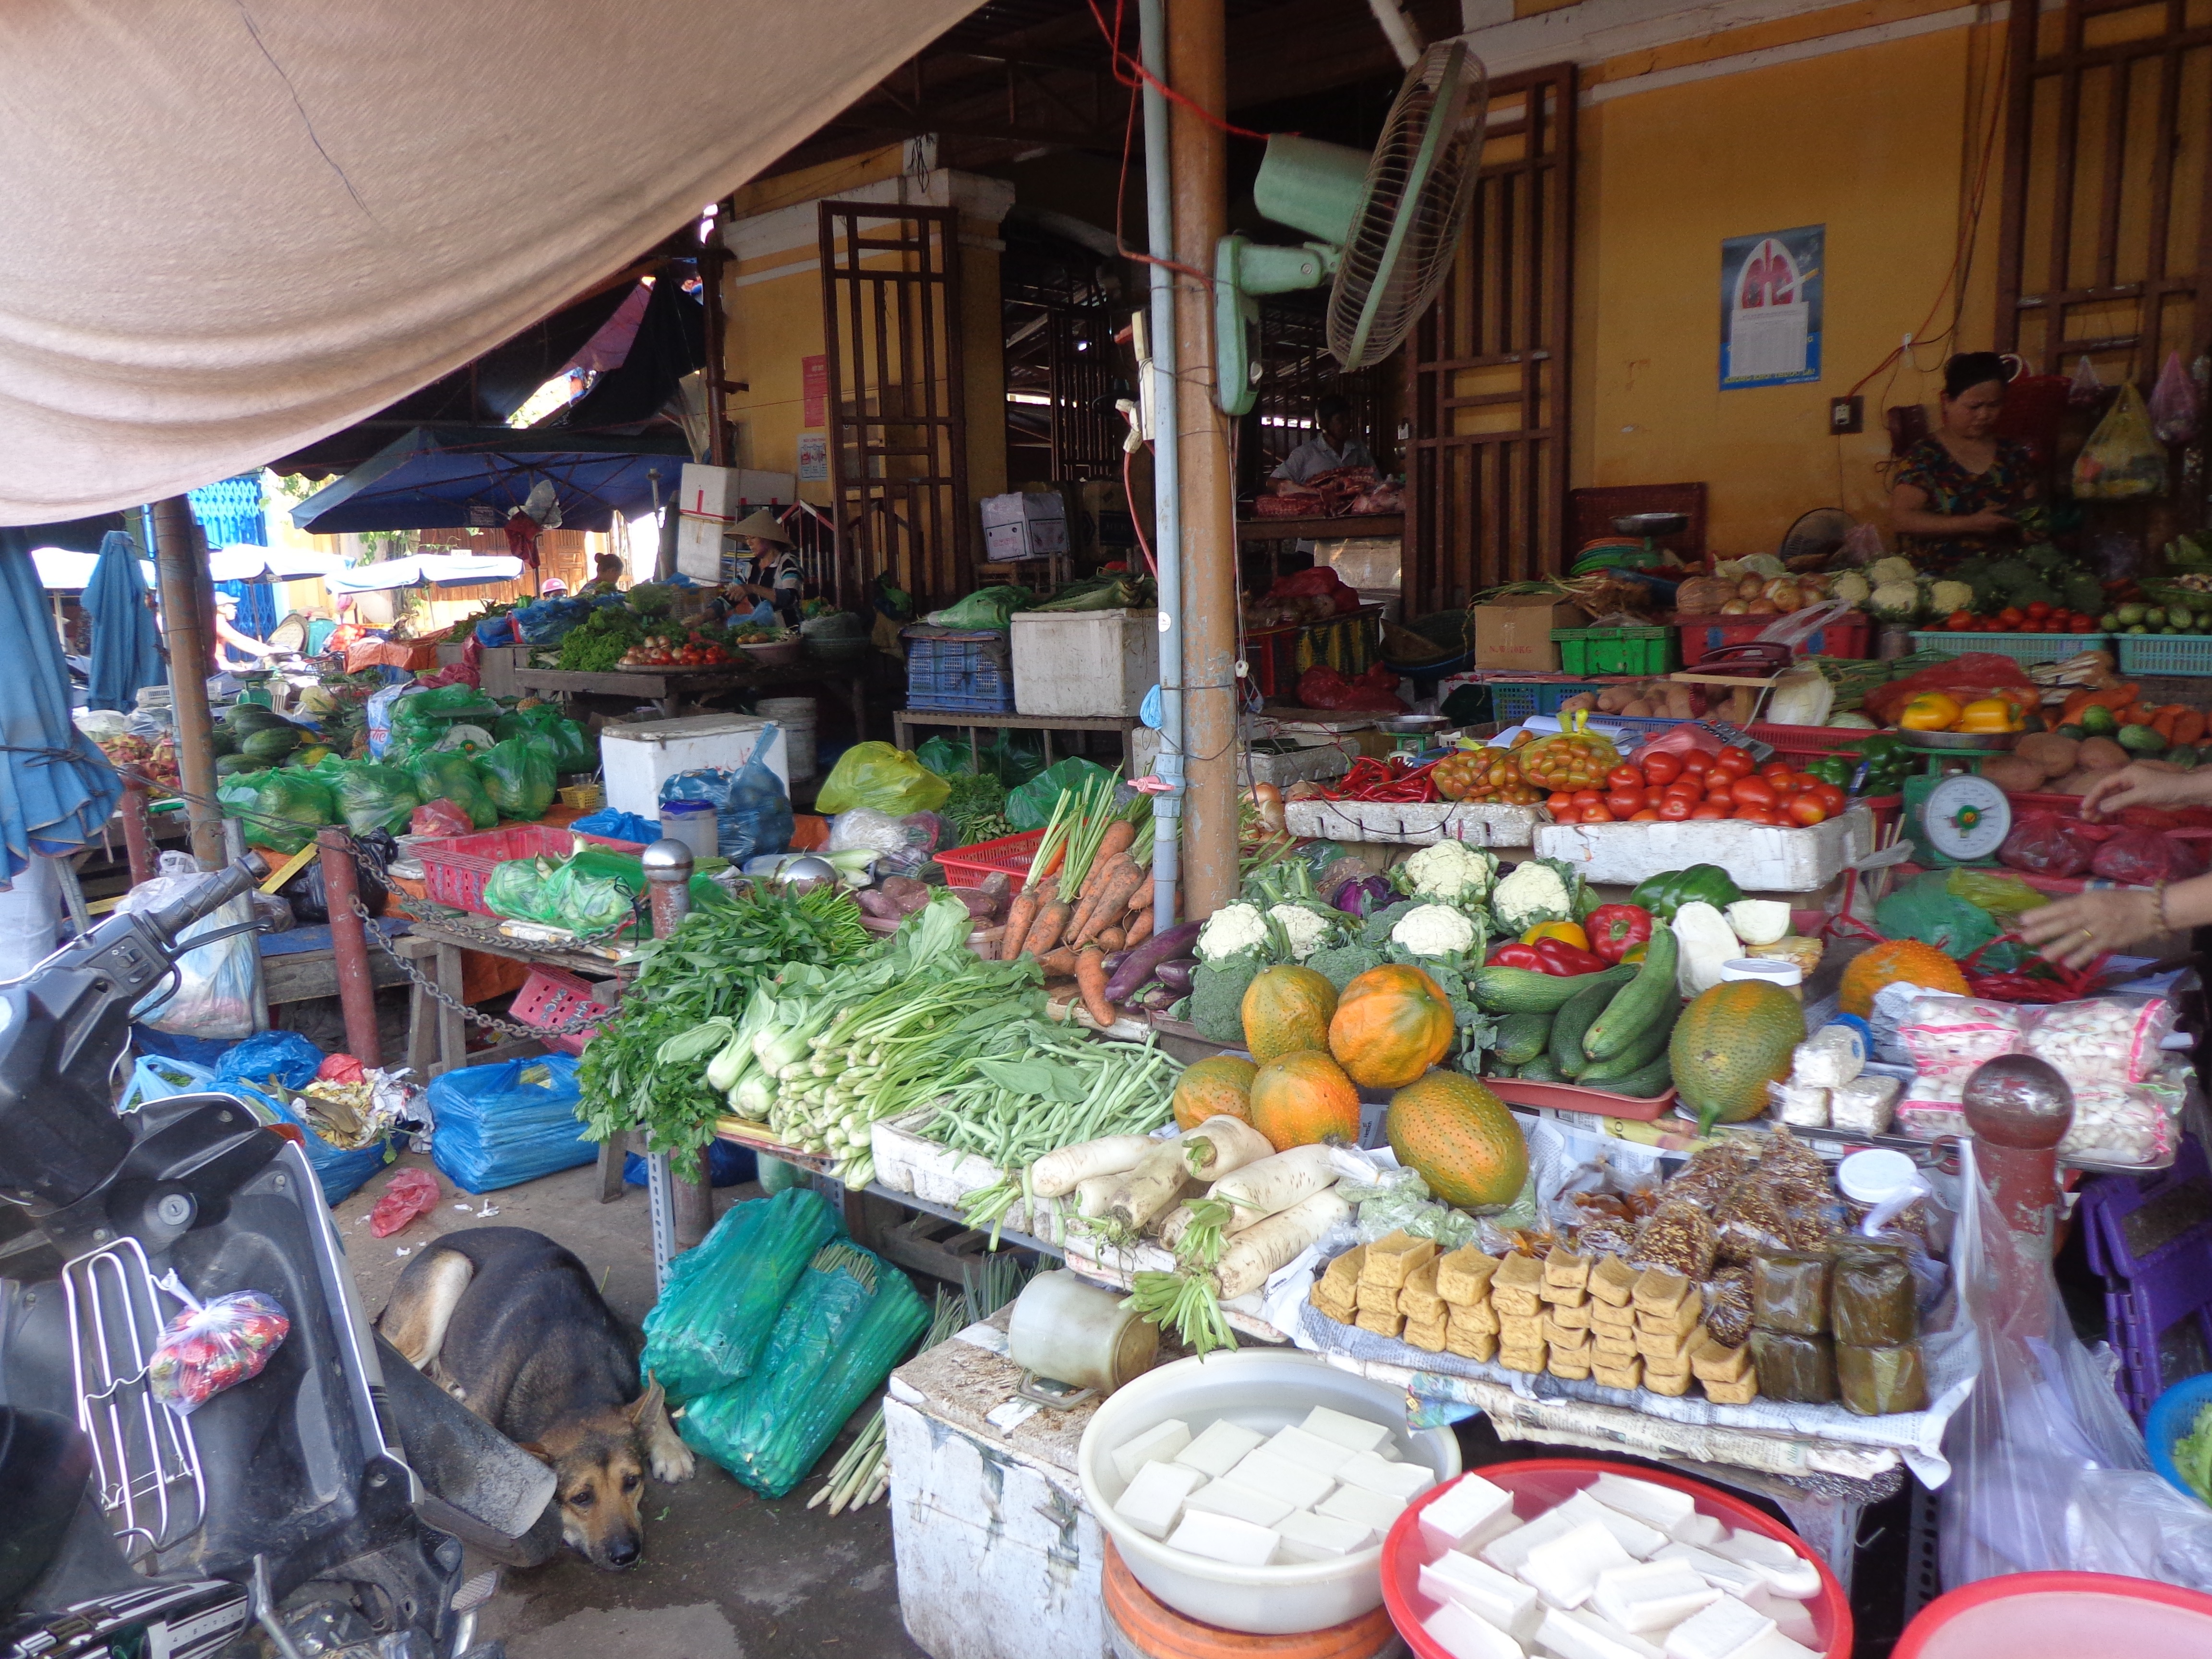 Fruits and vegetable shops are lined up outside the market building, spilling into the pavement.